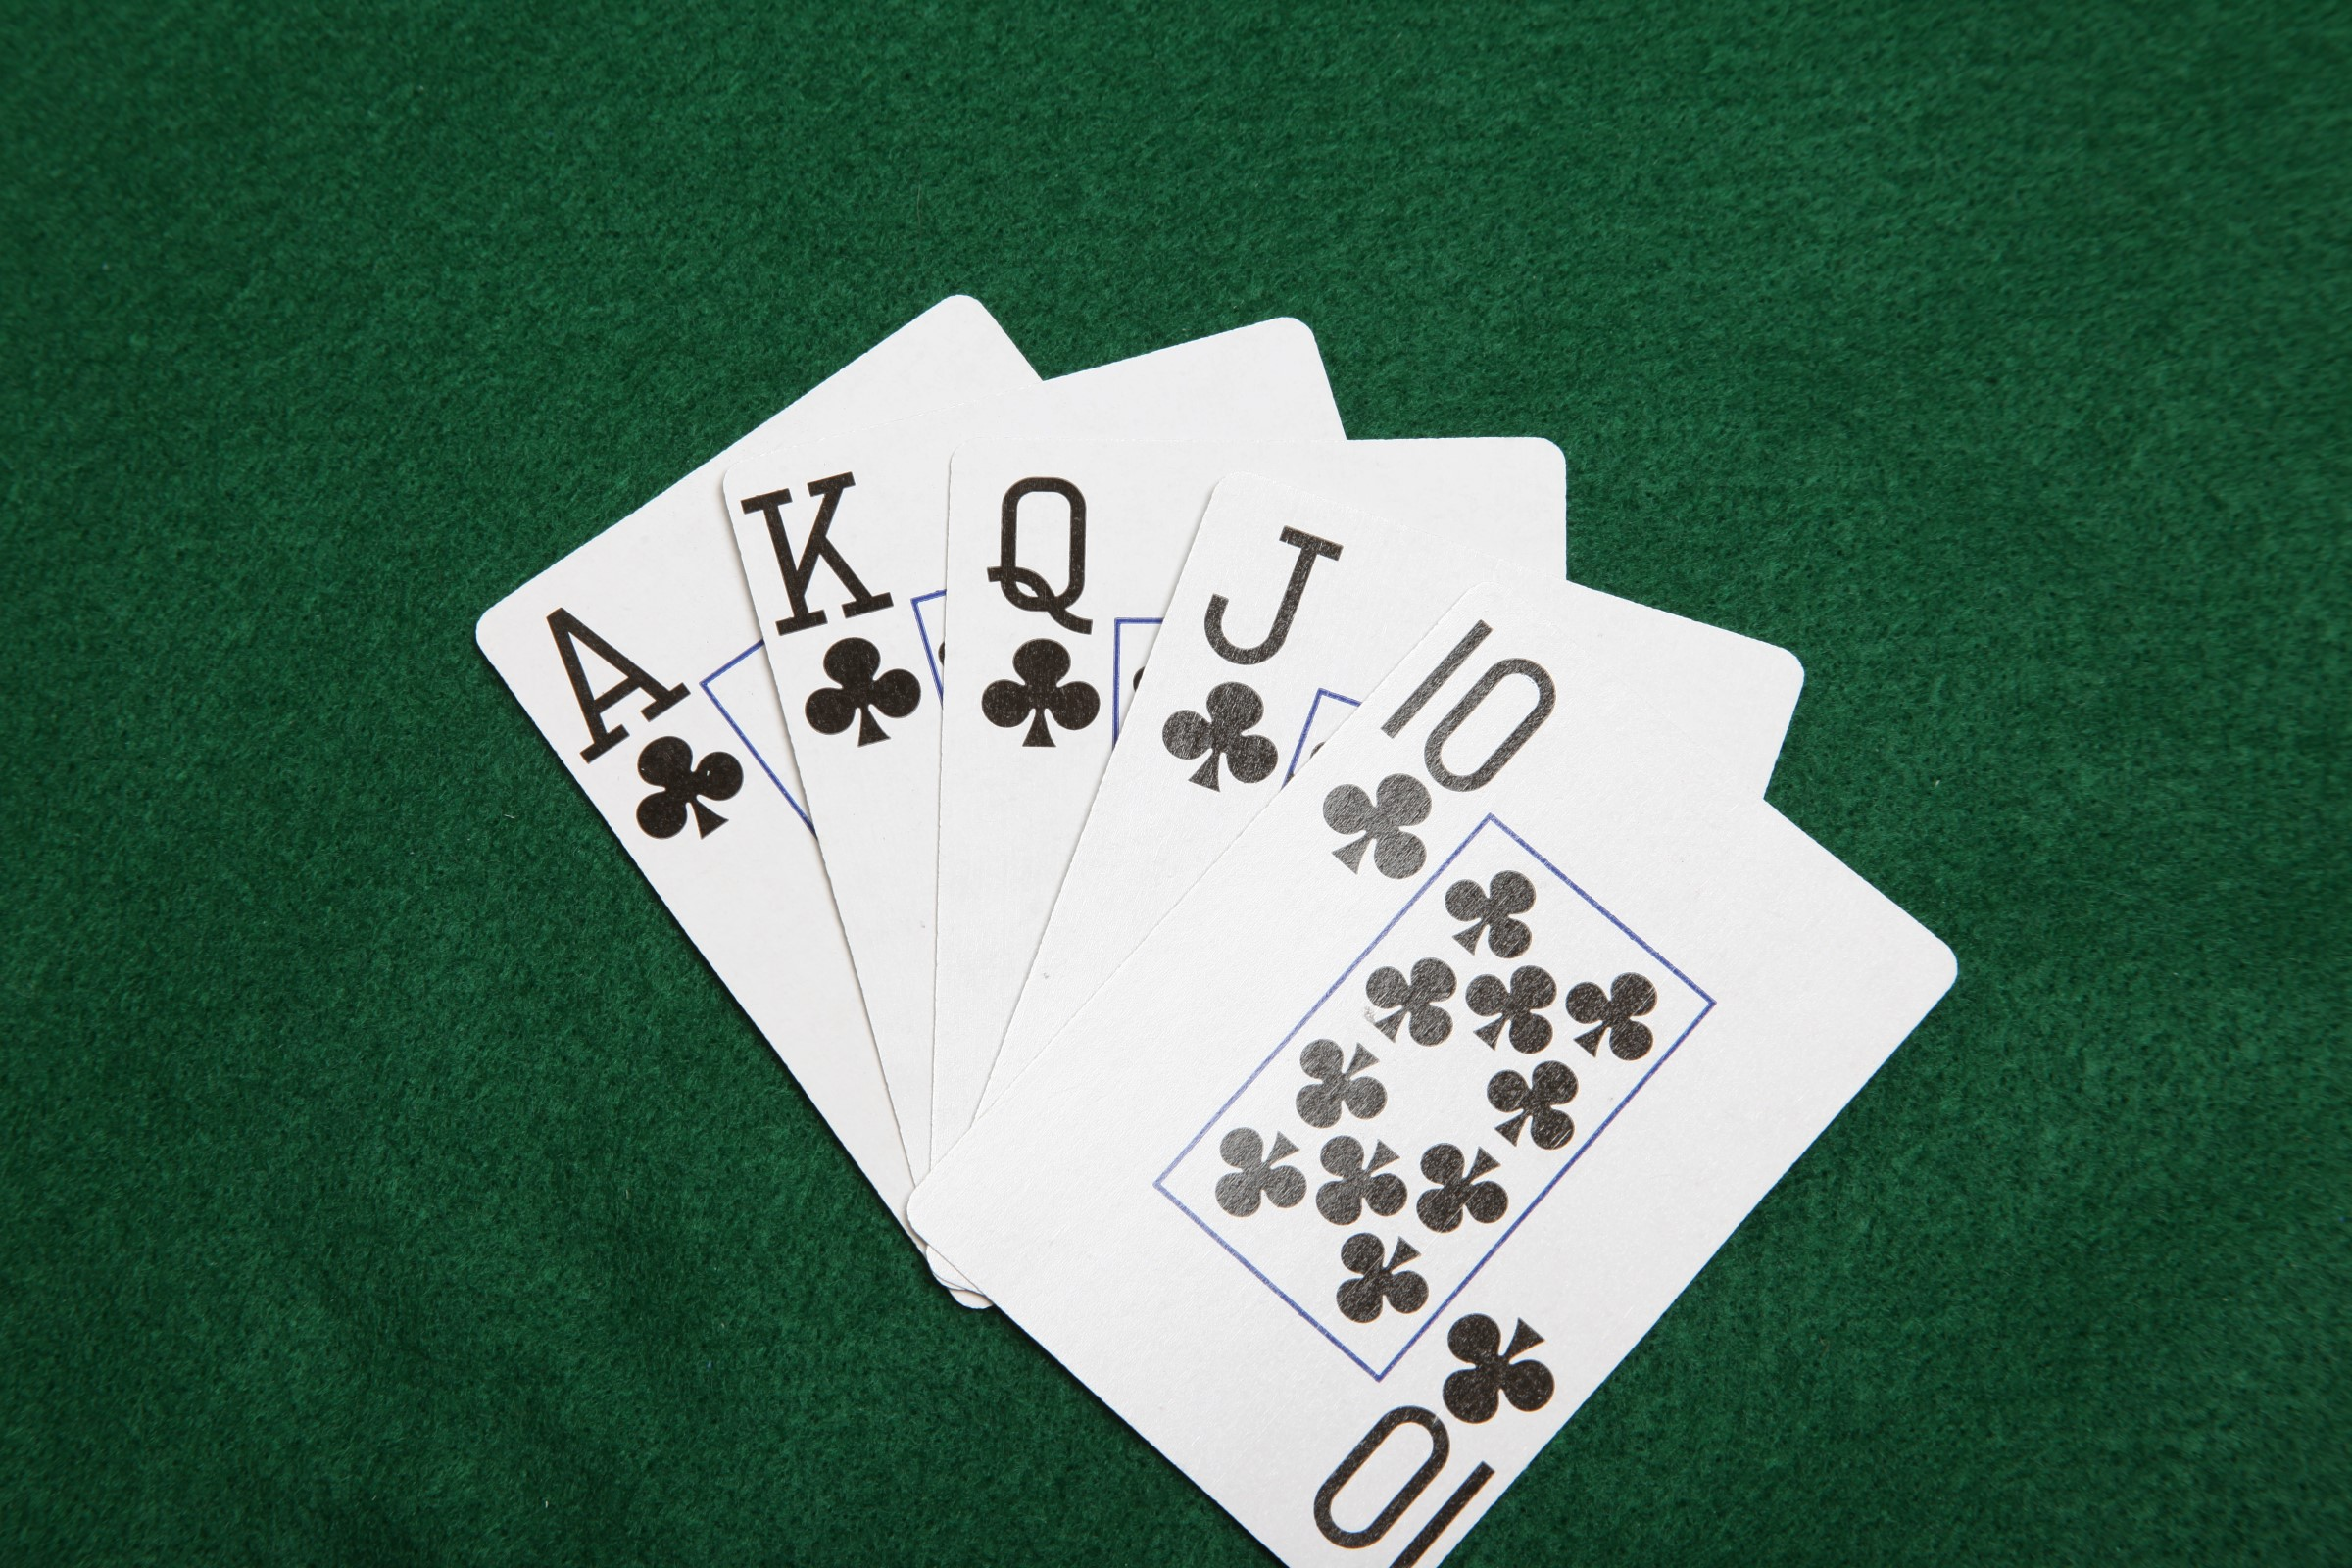 Poker hand -Straight, 5, Bet, Cards, Draw, HQ Photo